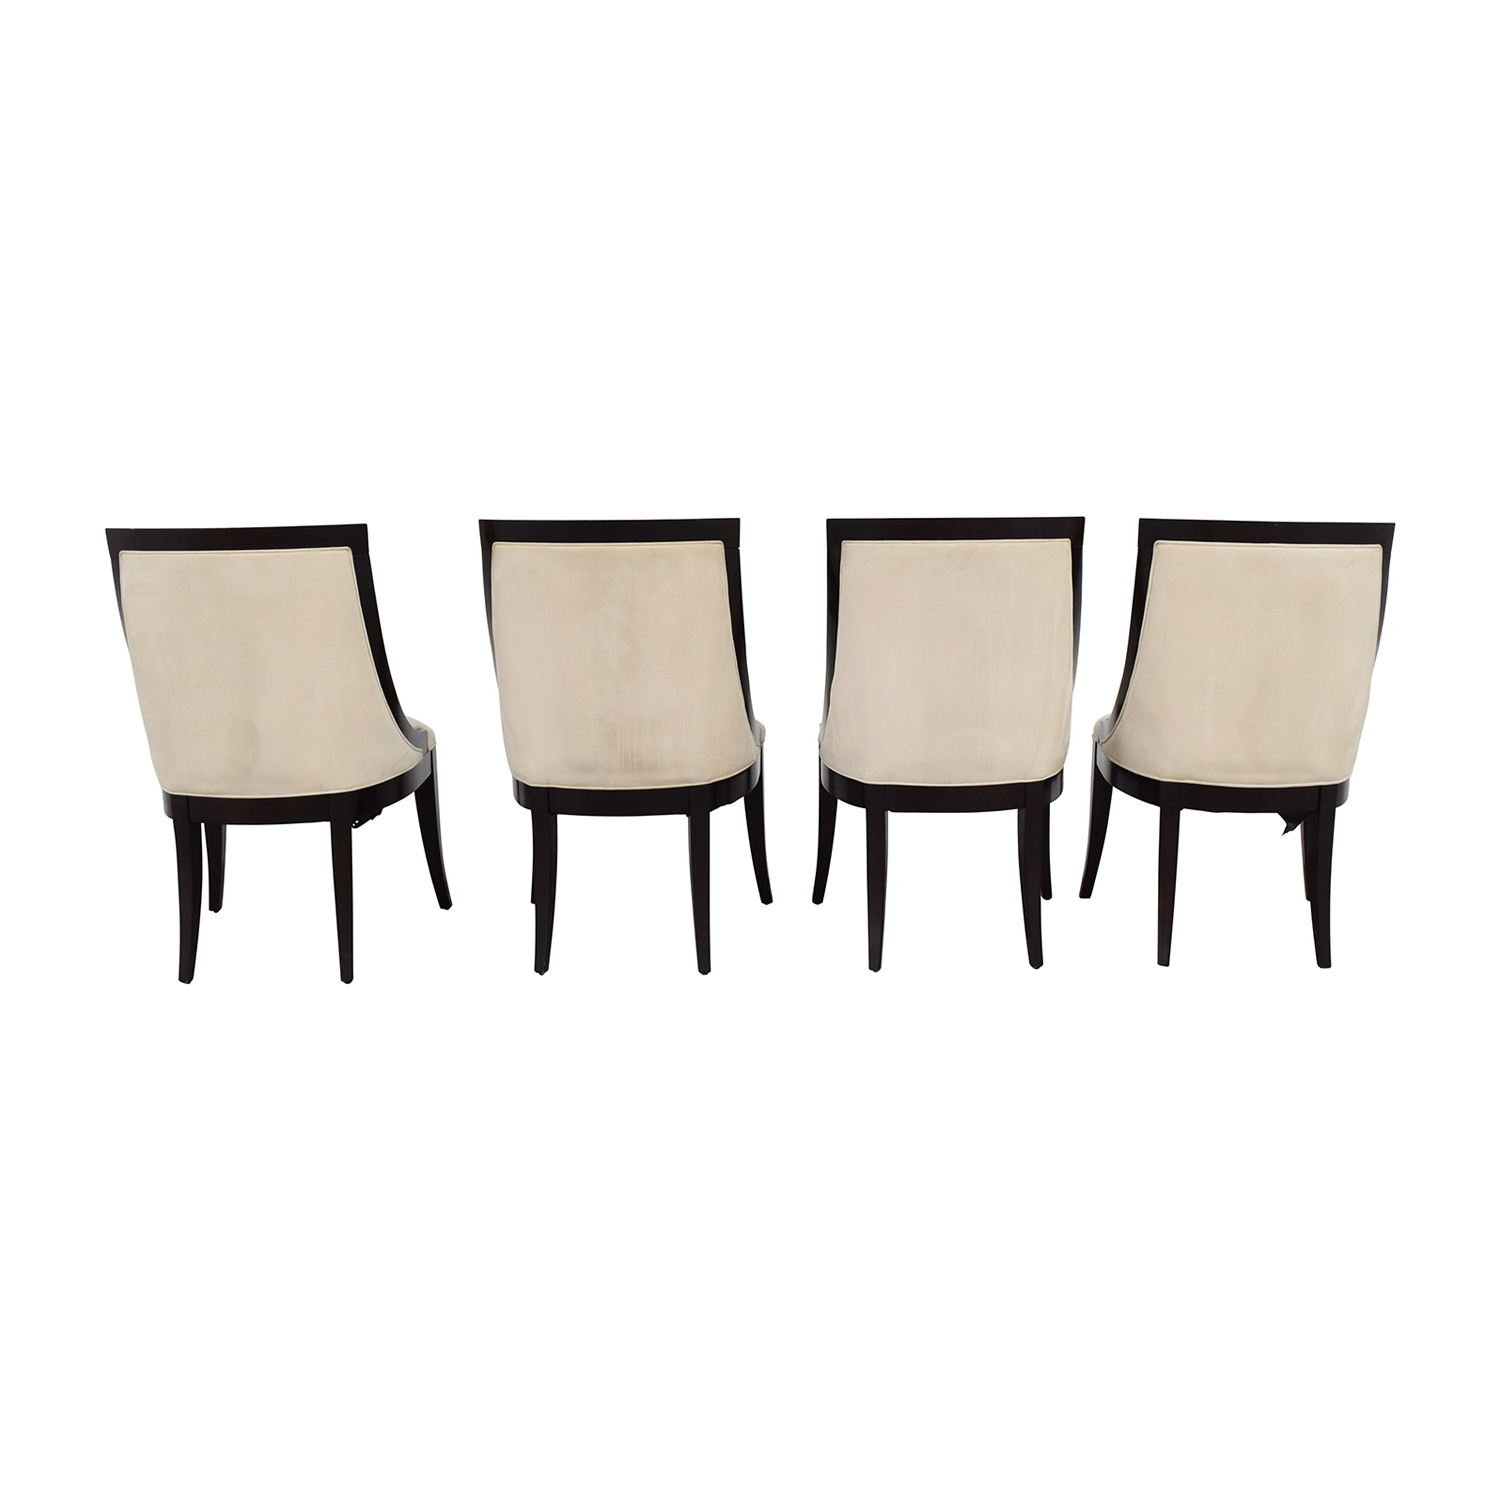 Restoration Hardware Restoration Hardware Cream Upholstered Dining Chairs price